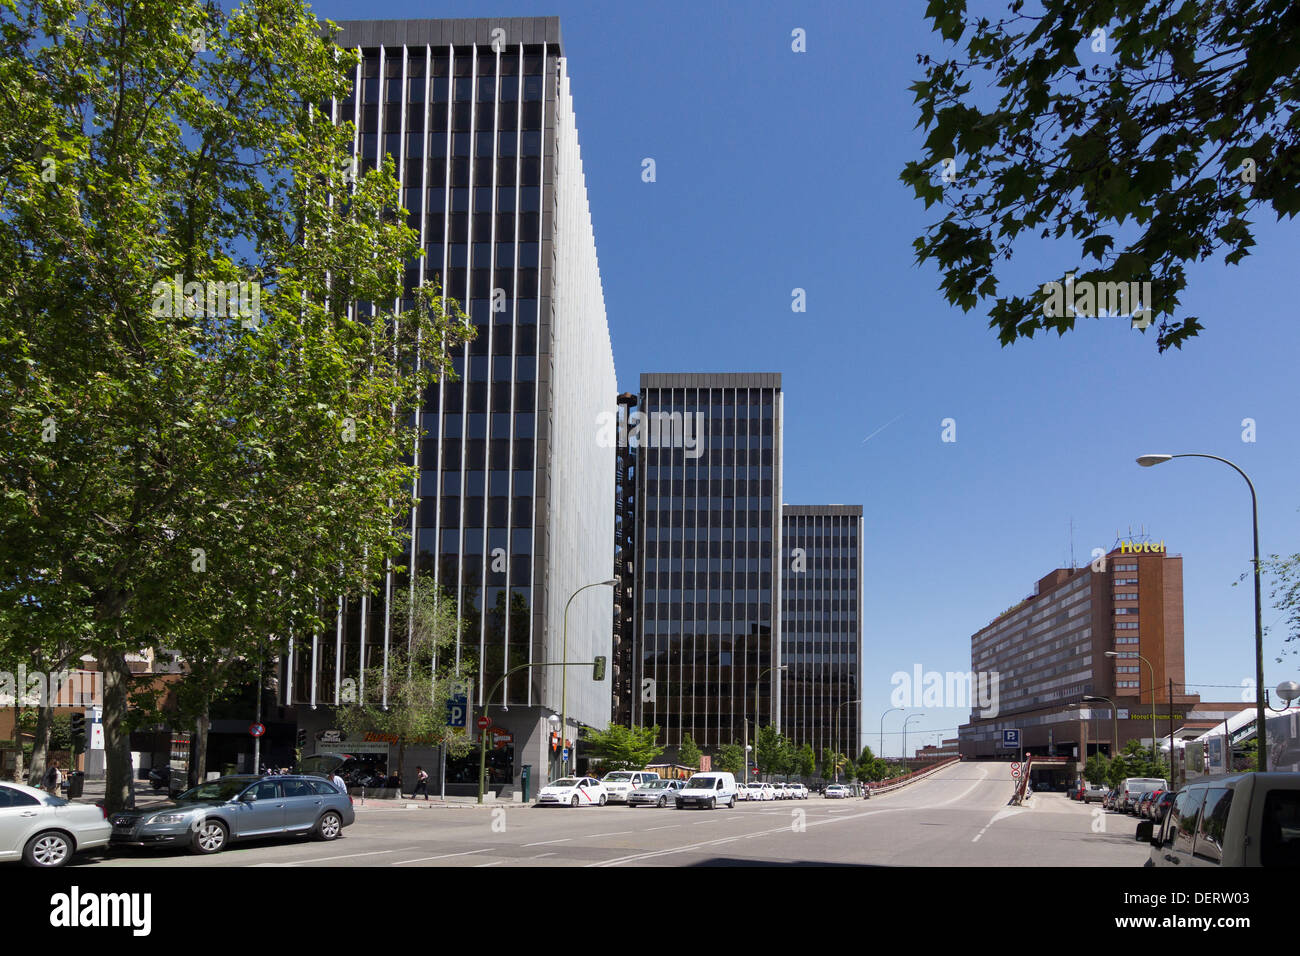 From Plaza de Castilla this road, Calle Augustin de Foxa, leads to Chamartin railway station and Chamartin Hotel Stock Photo